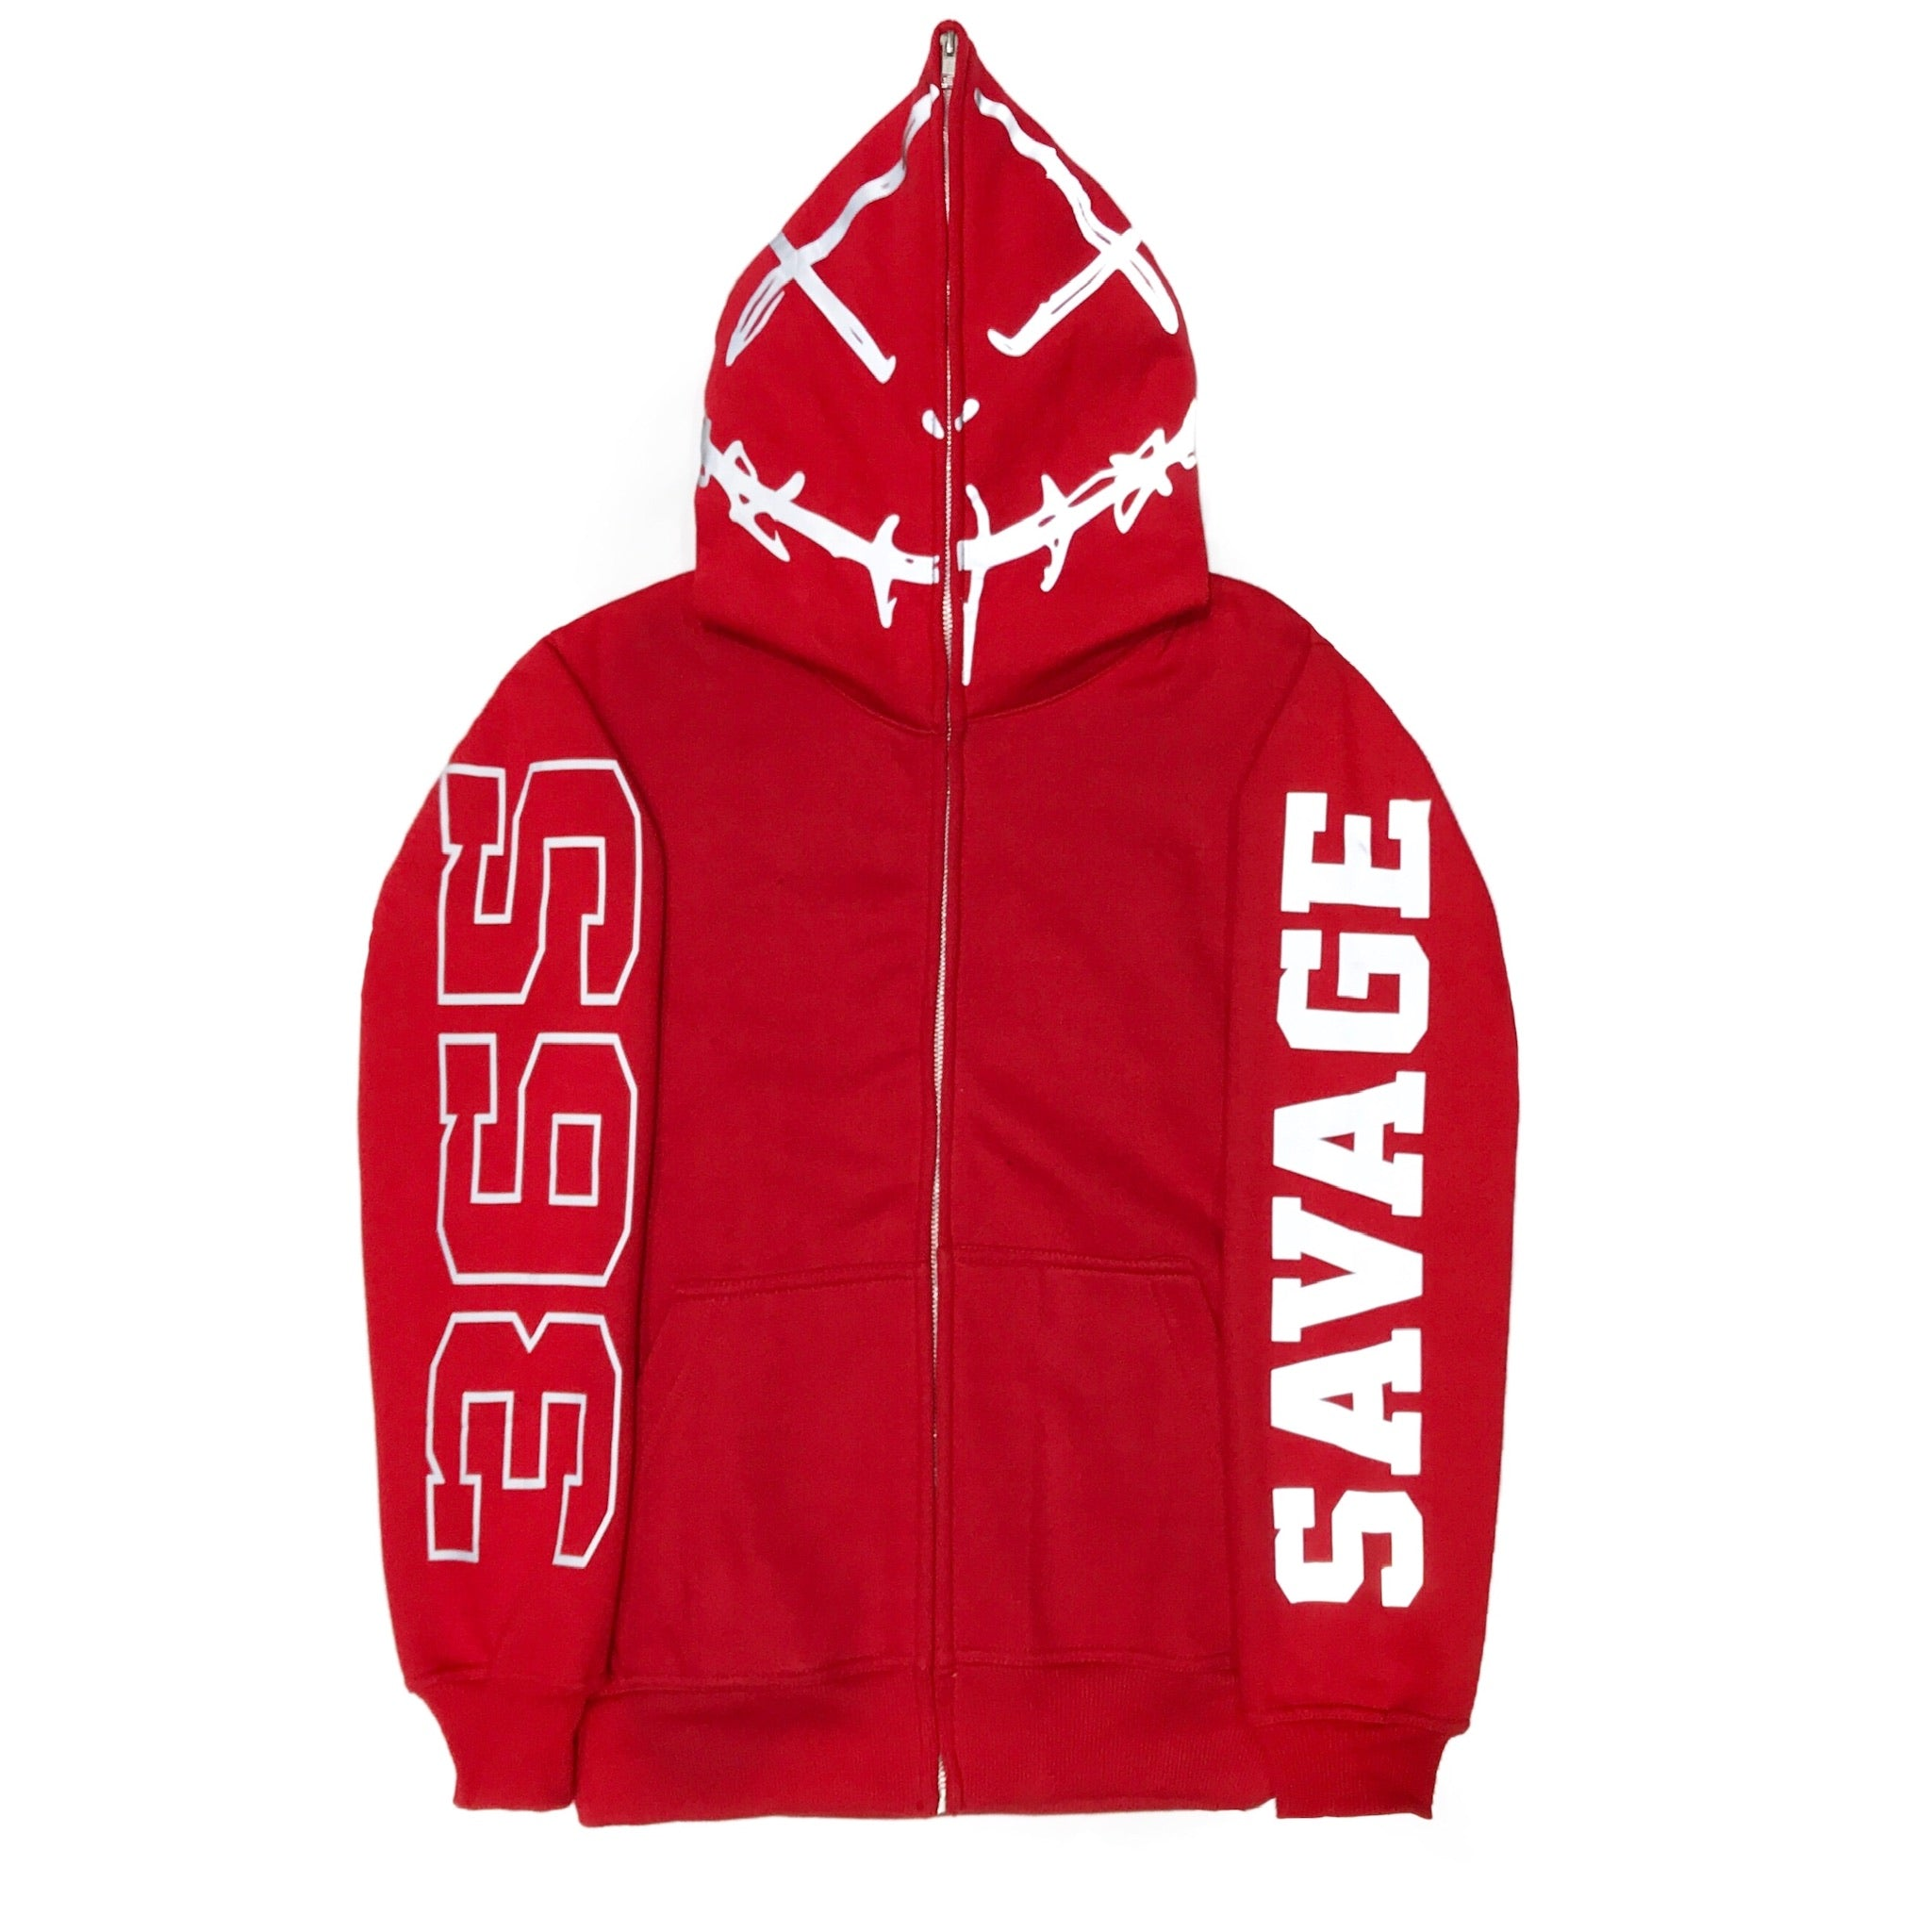 365 Clothing Savage Full Zip Up Hoodie -Red/3M